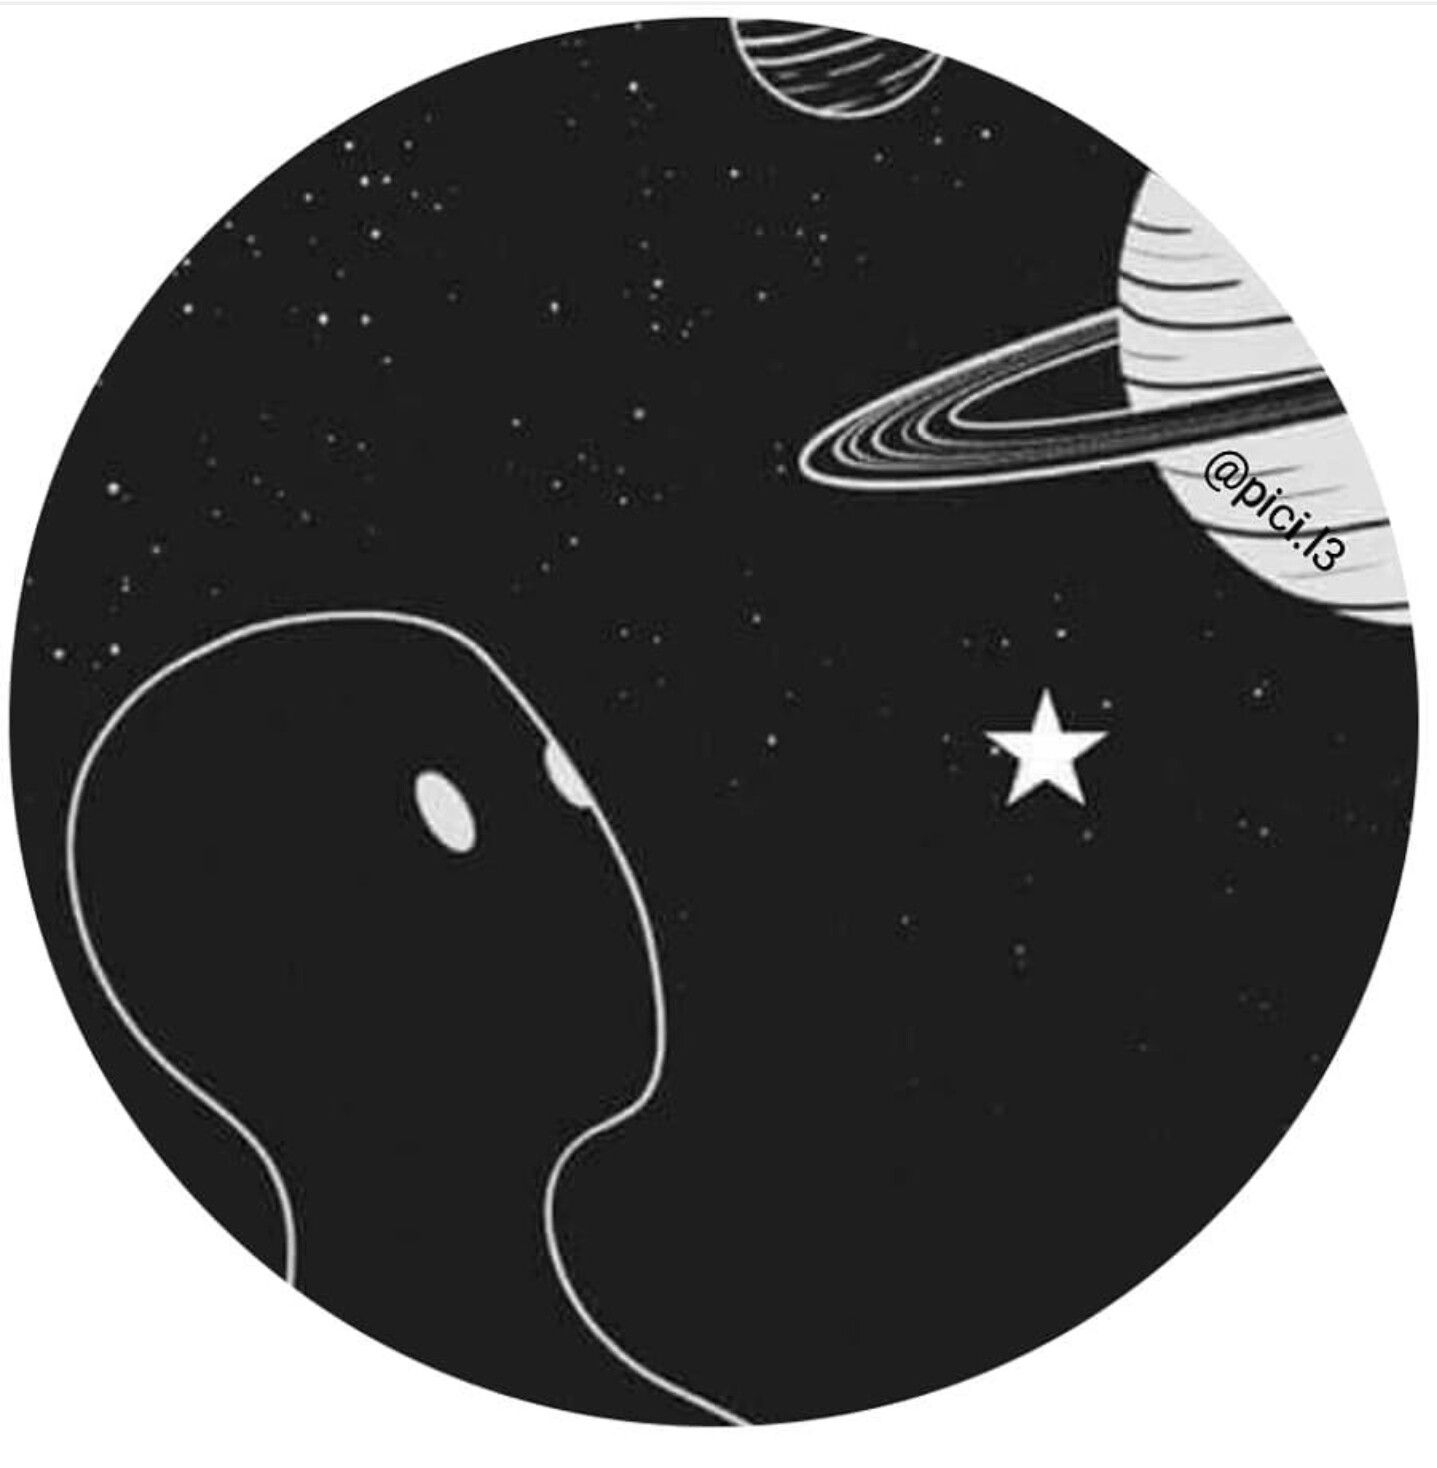 Pin By Raneem On خلفية Ink Art Profile Picture Image Today discord has more than 50 million people connected and everyone wants to give their profile a unique look to show. profile picture